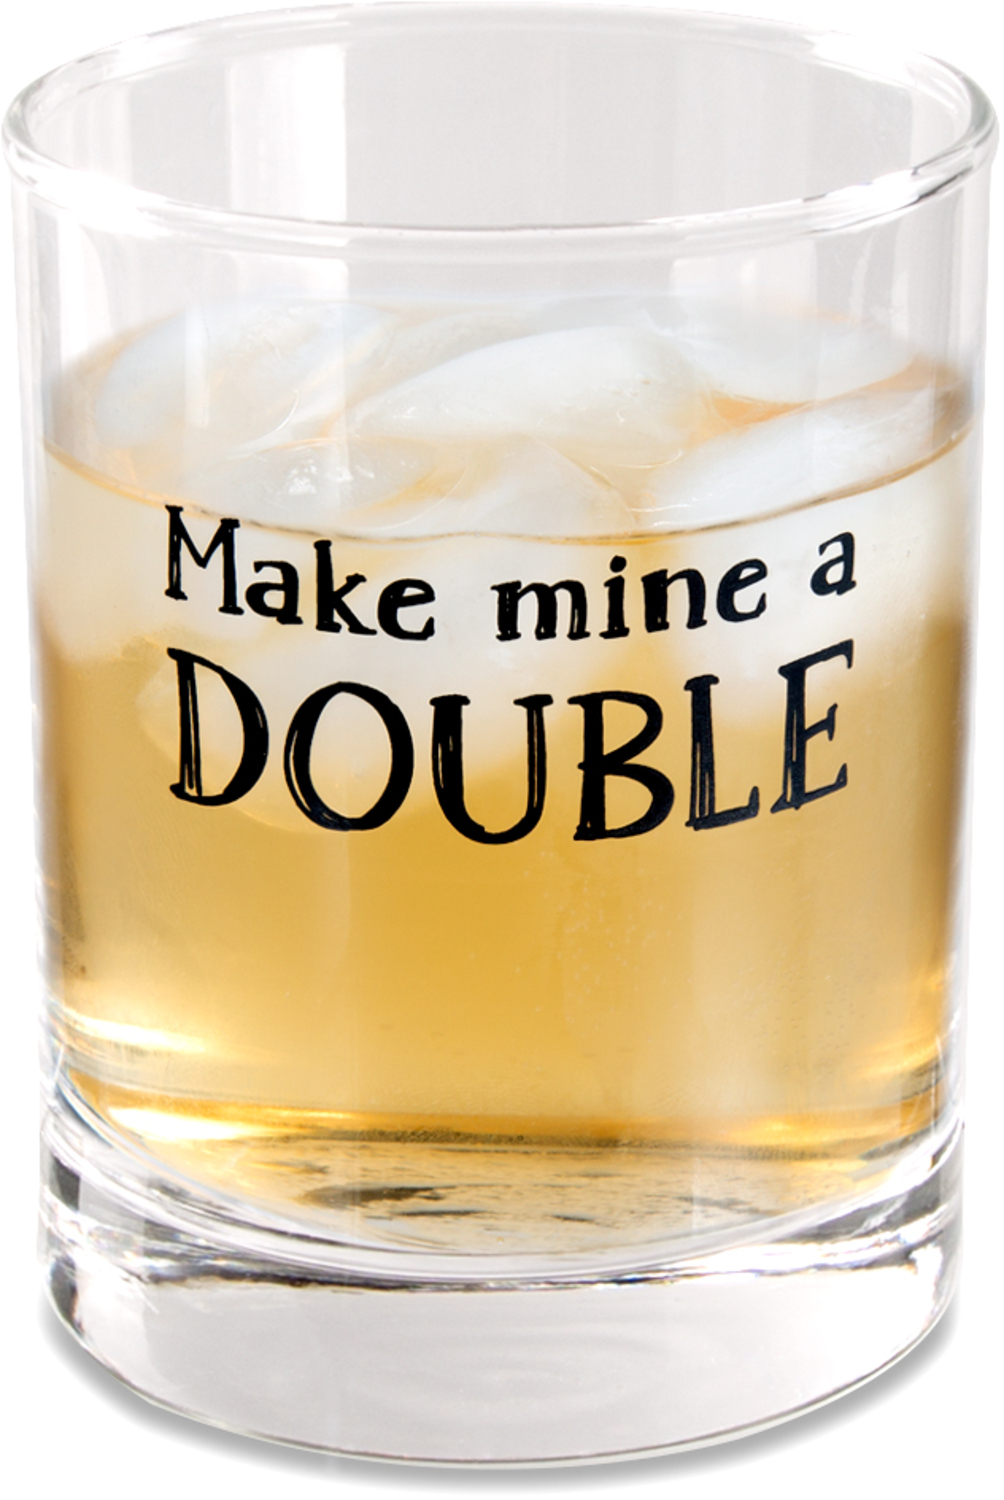 Double by Man Crafted - Double - 11 oz Rocks Glass